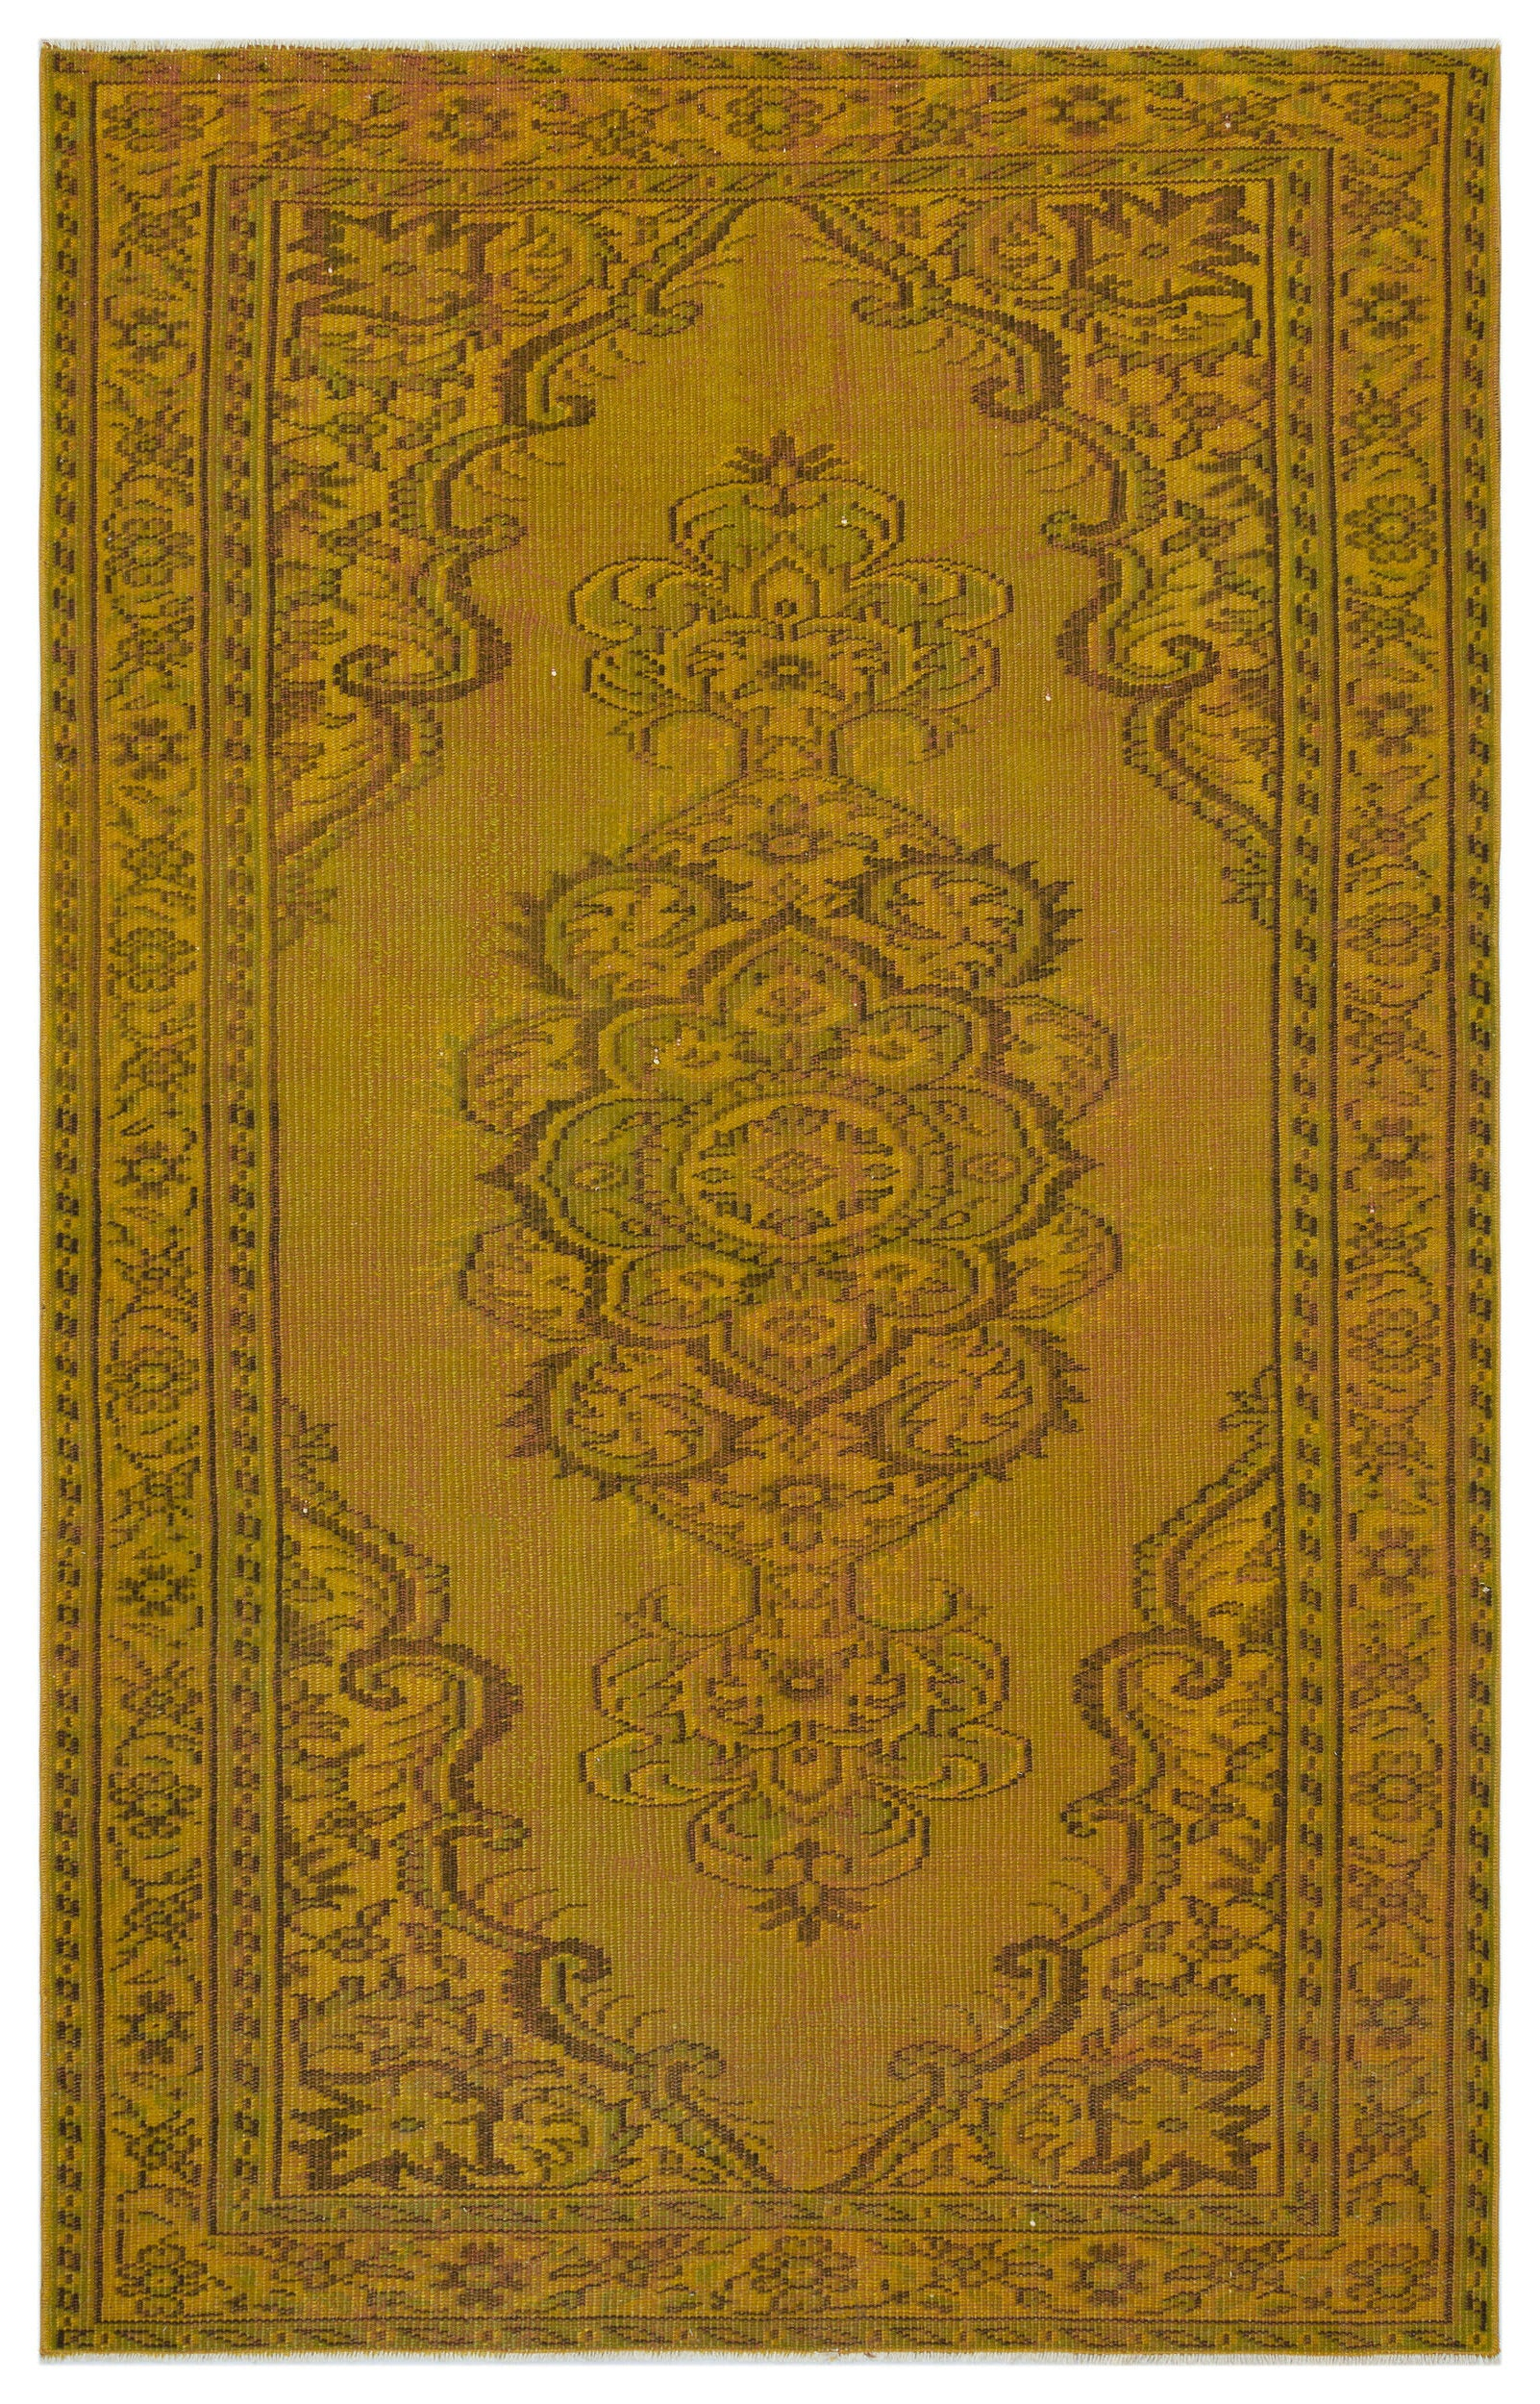 Yellow Over Dyed Vintage Rug 4'9'' x 7'8'' ft 145 x 234 cm